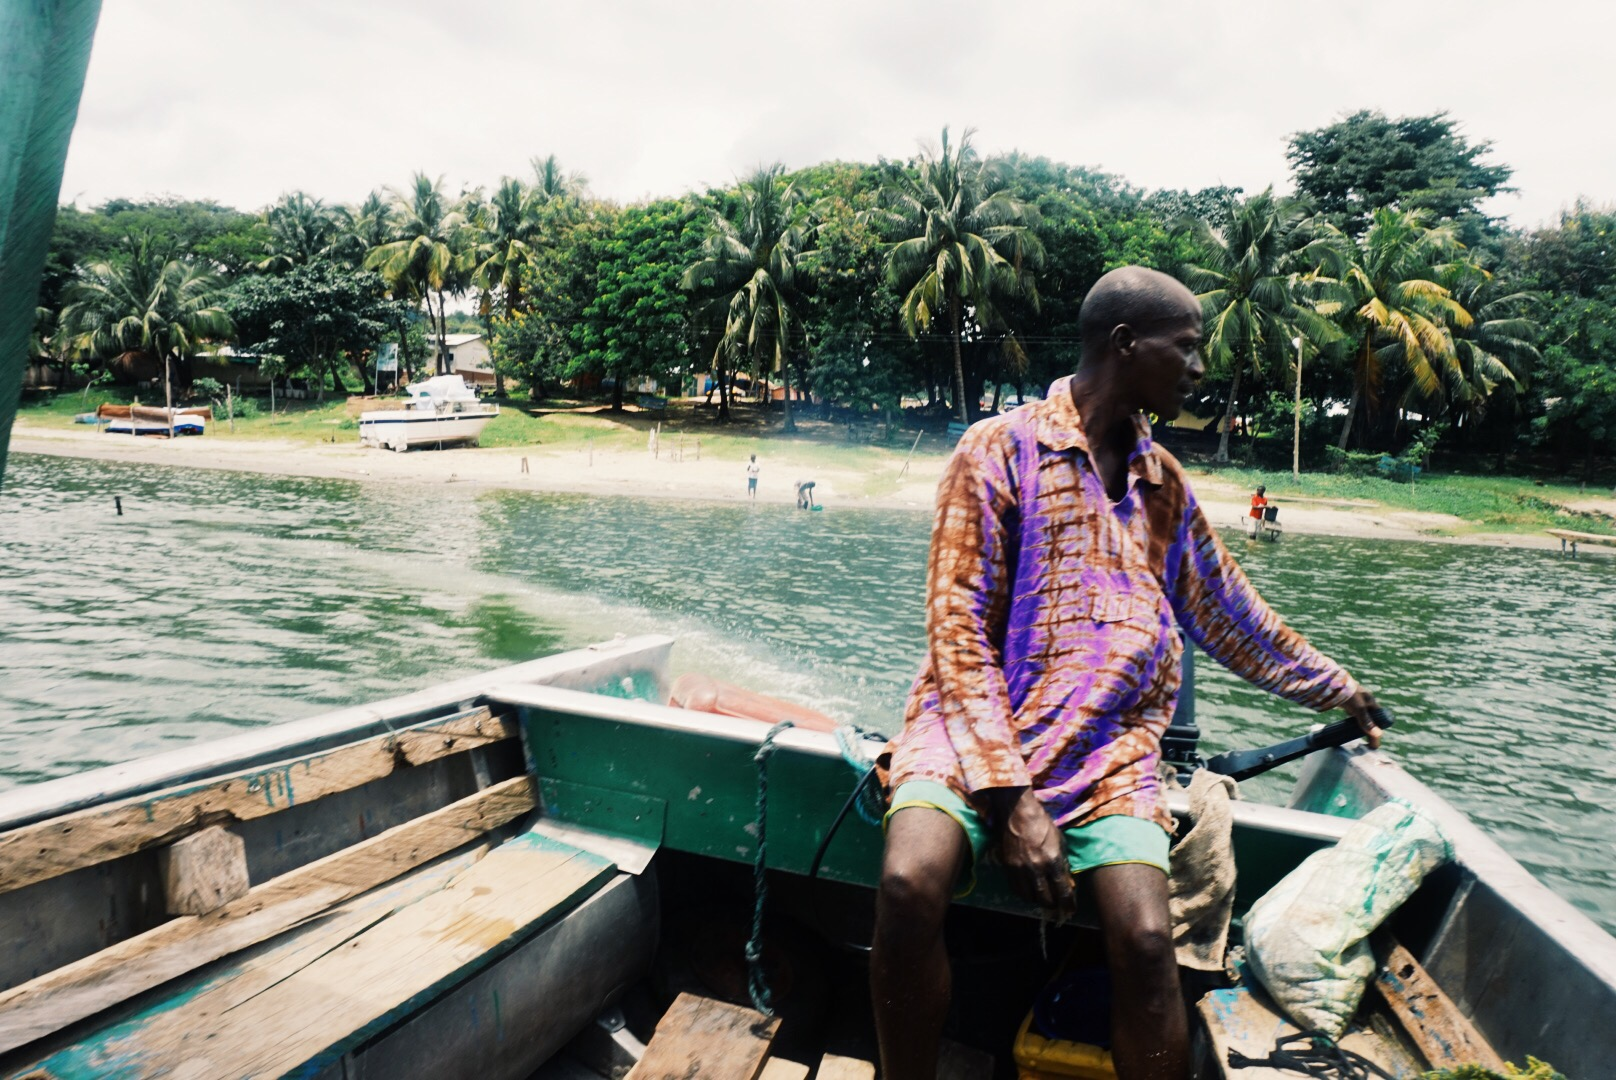 EXPLORING GHANA: THE LEGENDARY LAKE BOSOMTWE